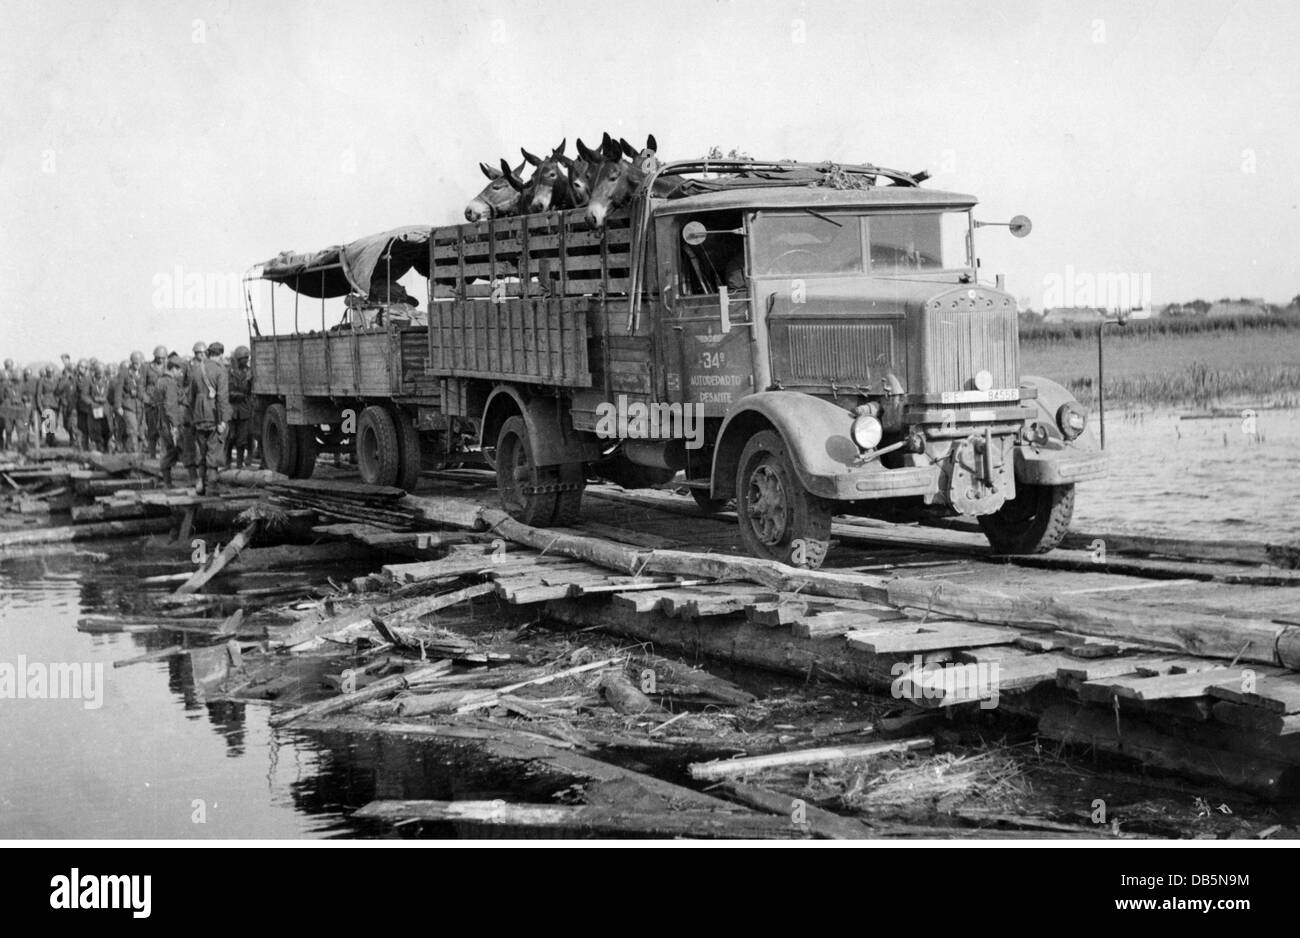 military, Italy, manoeuvre of the Italian army, late 1930s, lorry with mules, crossing a river over a makeshift - Stock Image